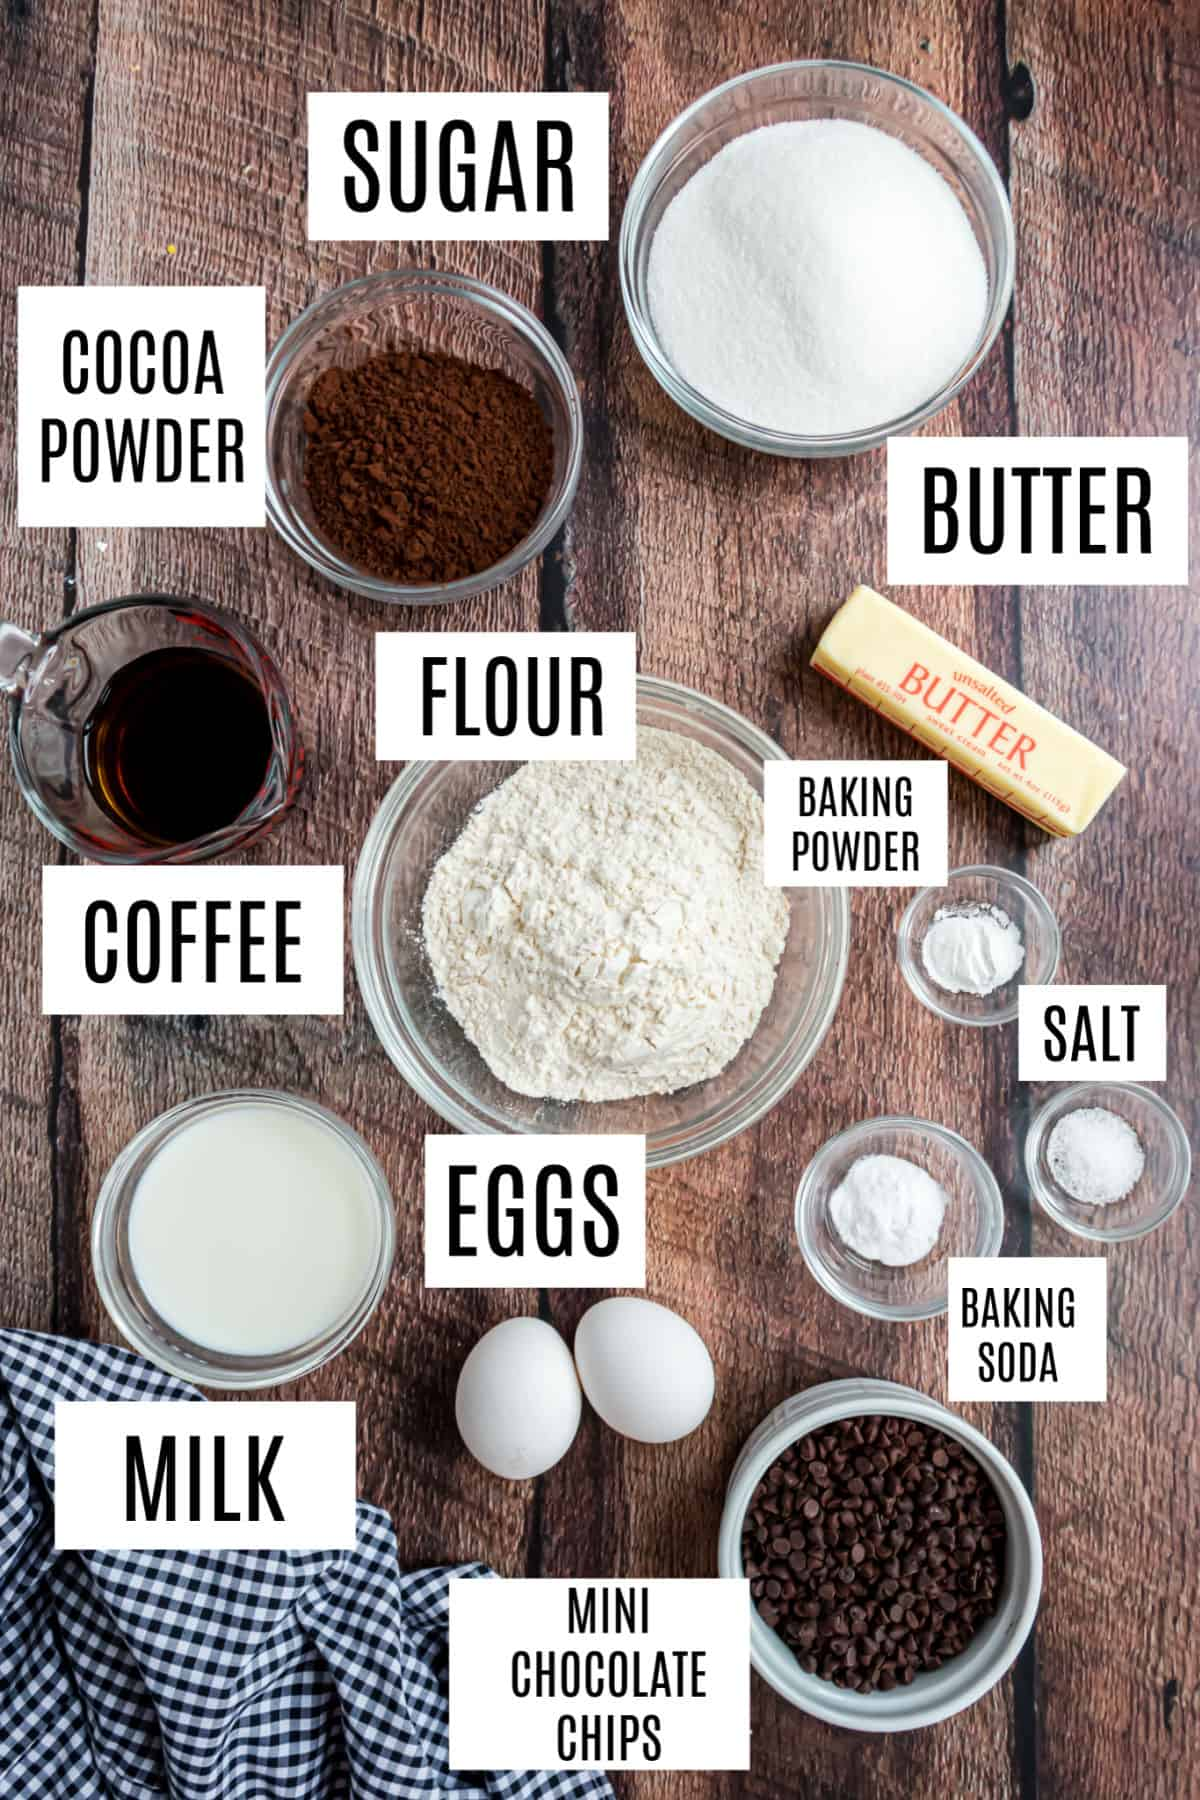 Ingredients needed to make dark chocolate cake from scratch.